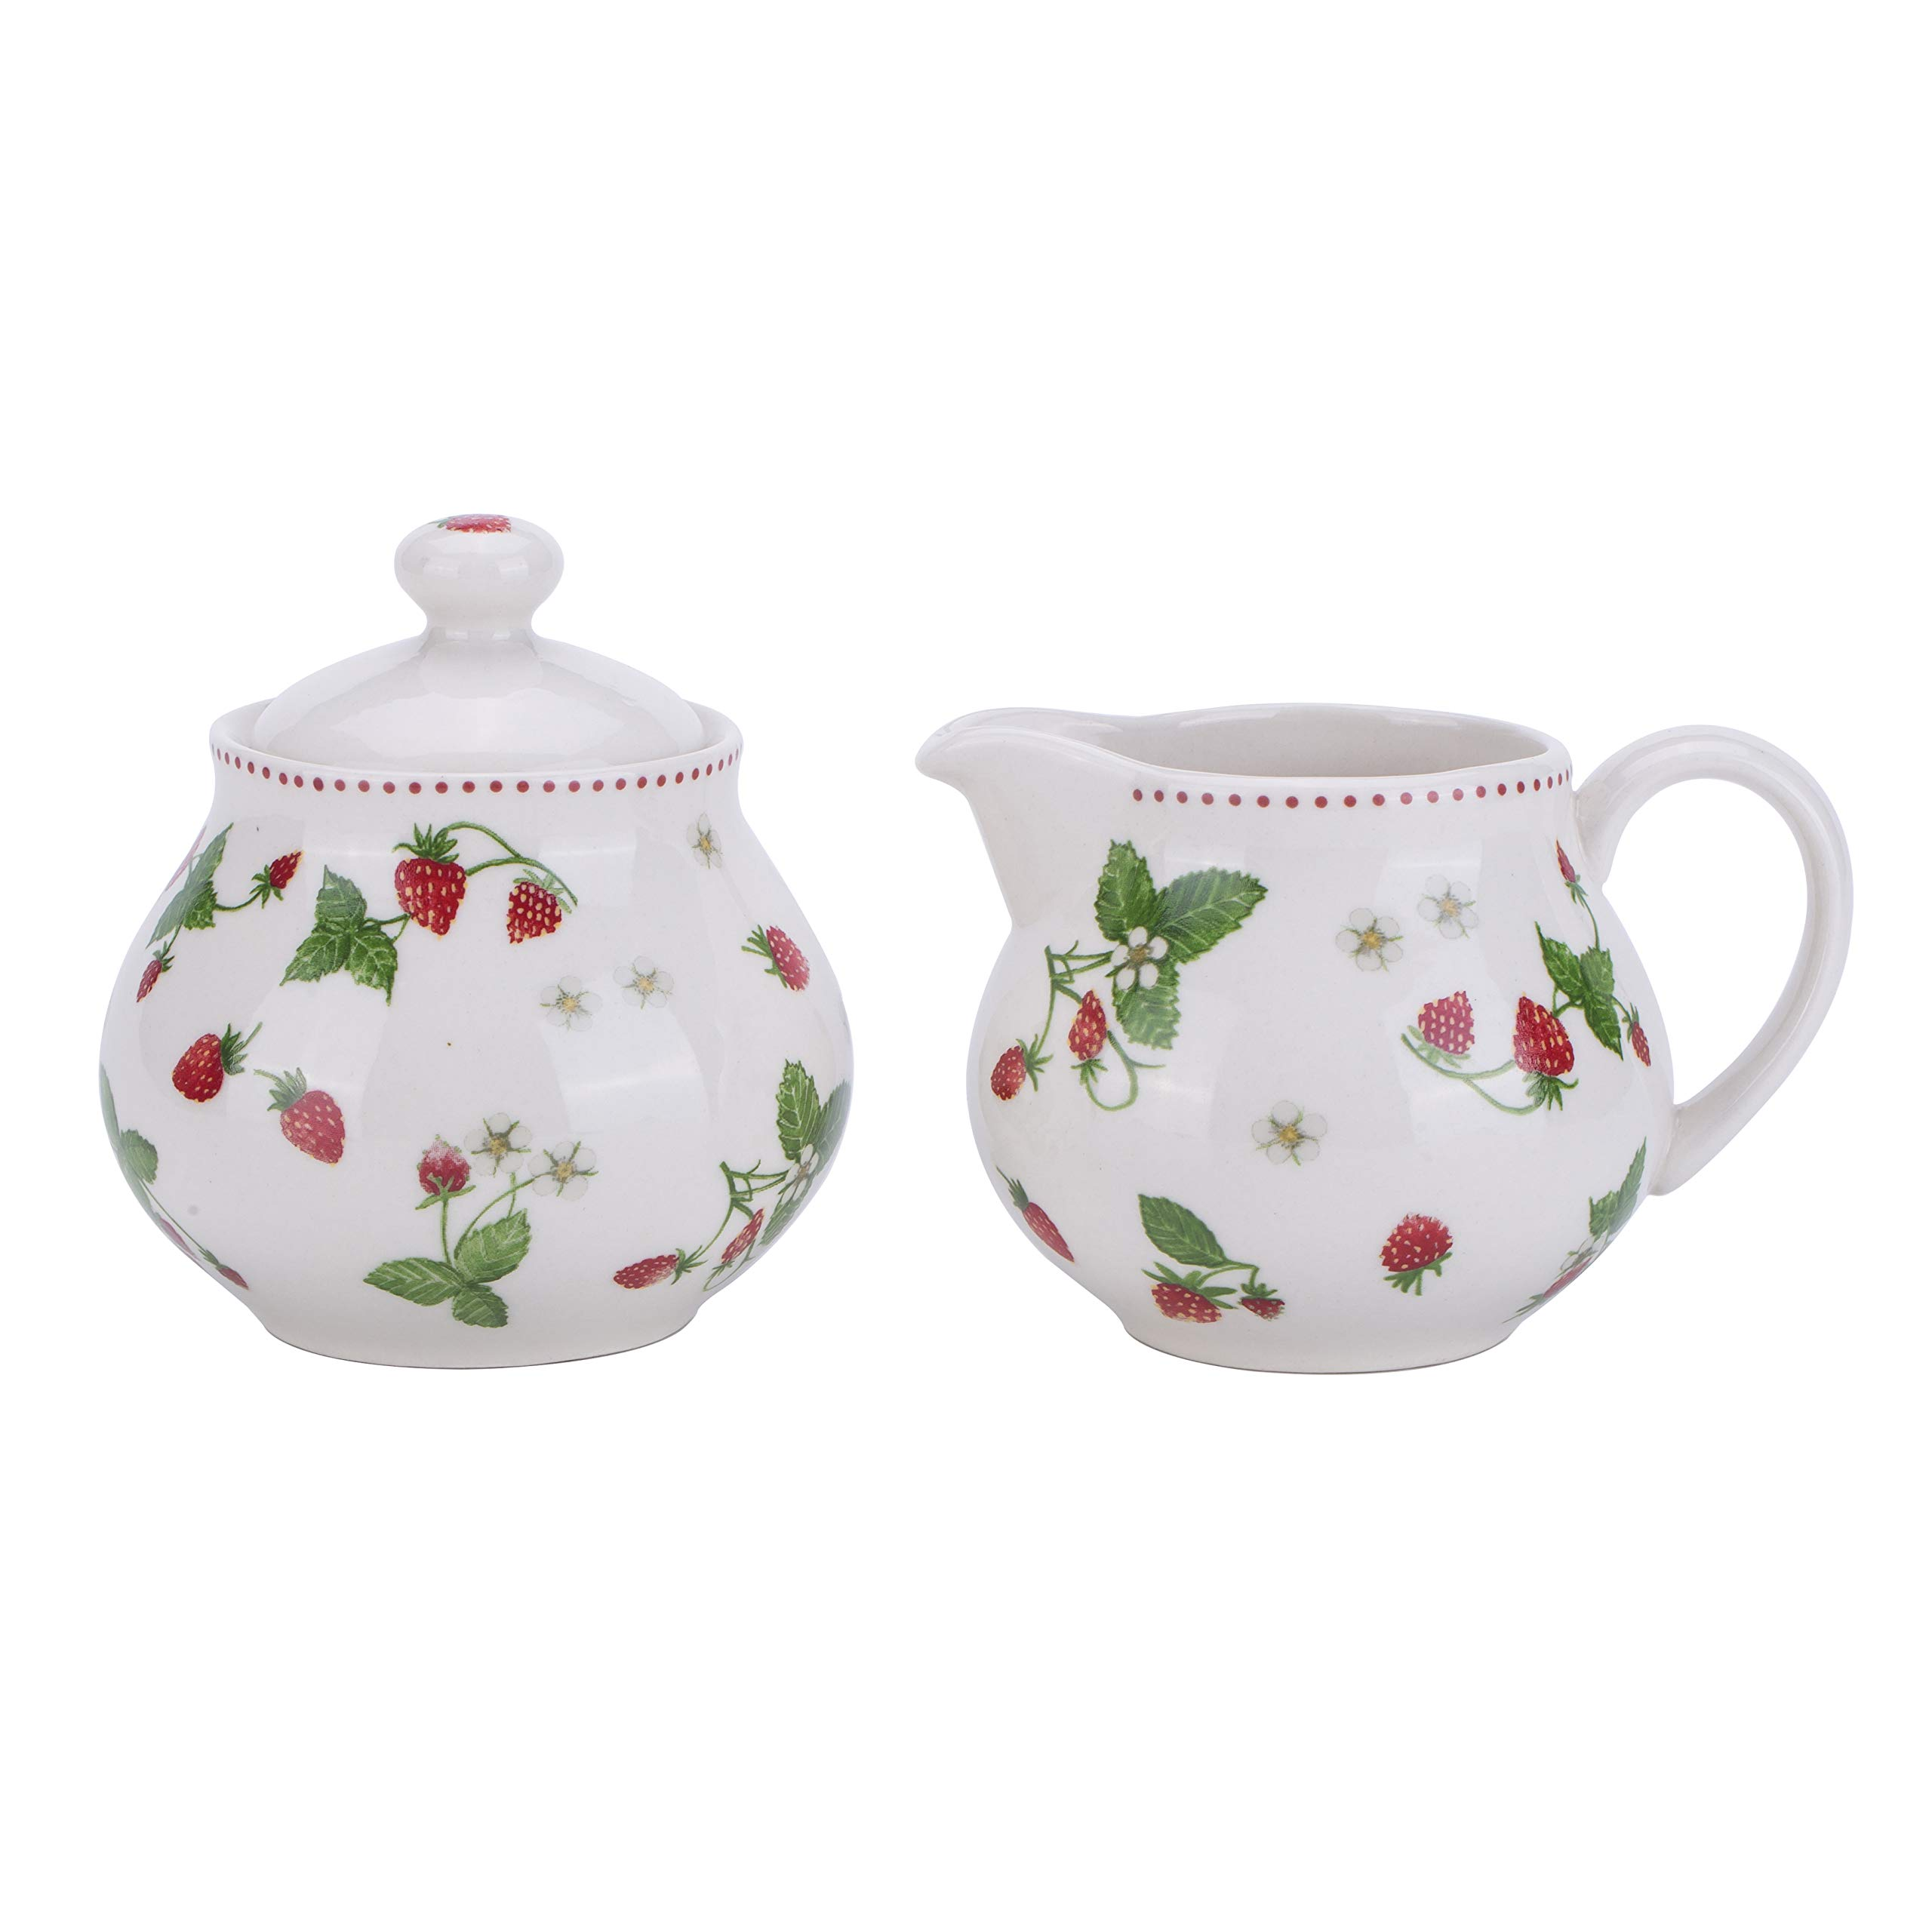 Lonovel Creamer and Sugar Sets with Lids Vintage In Beige Color for Coffee or Tea Porcelain Milk Pitcher and Sugar Bowl,Kitchen and Dining Beverage Serveware Tool,Strawberry